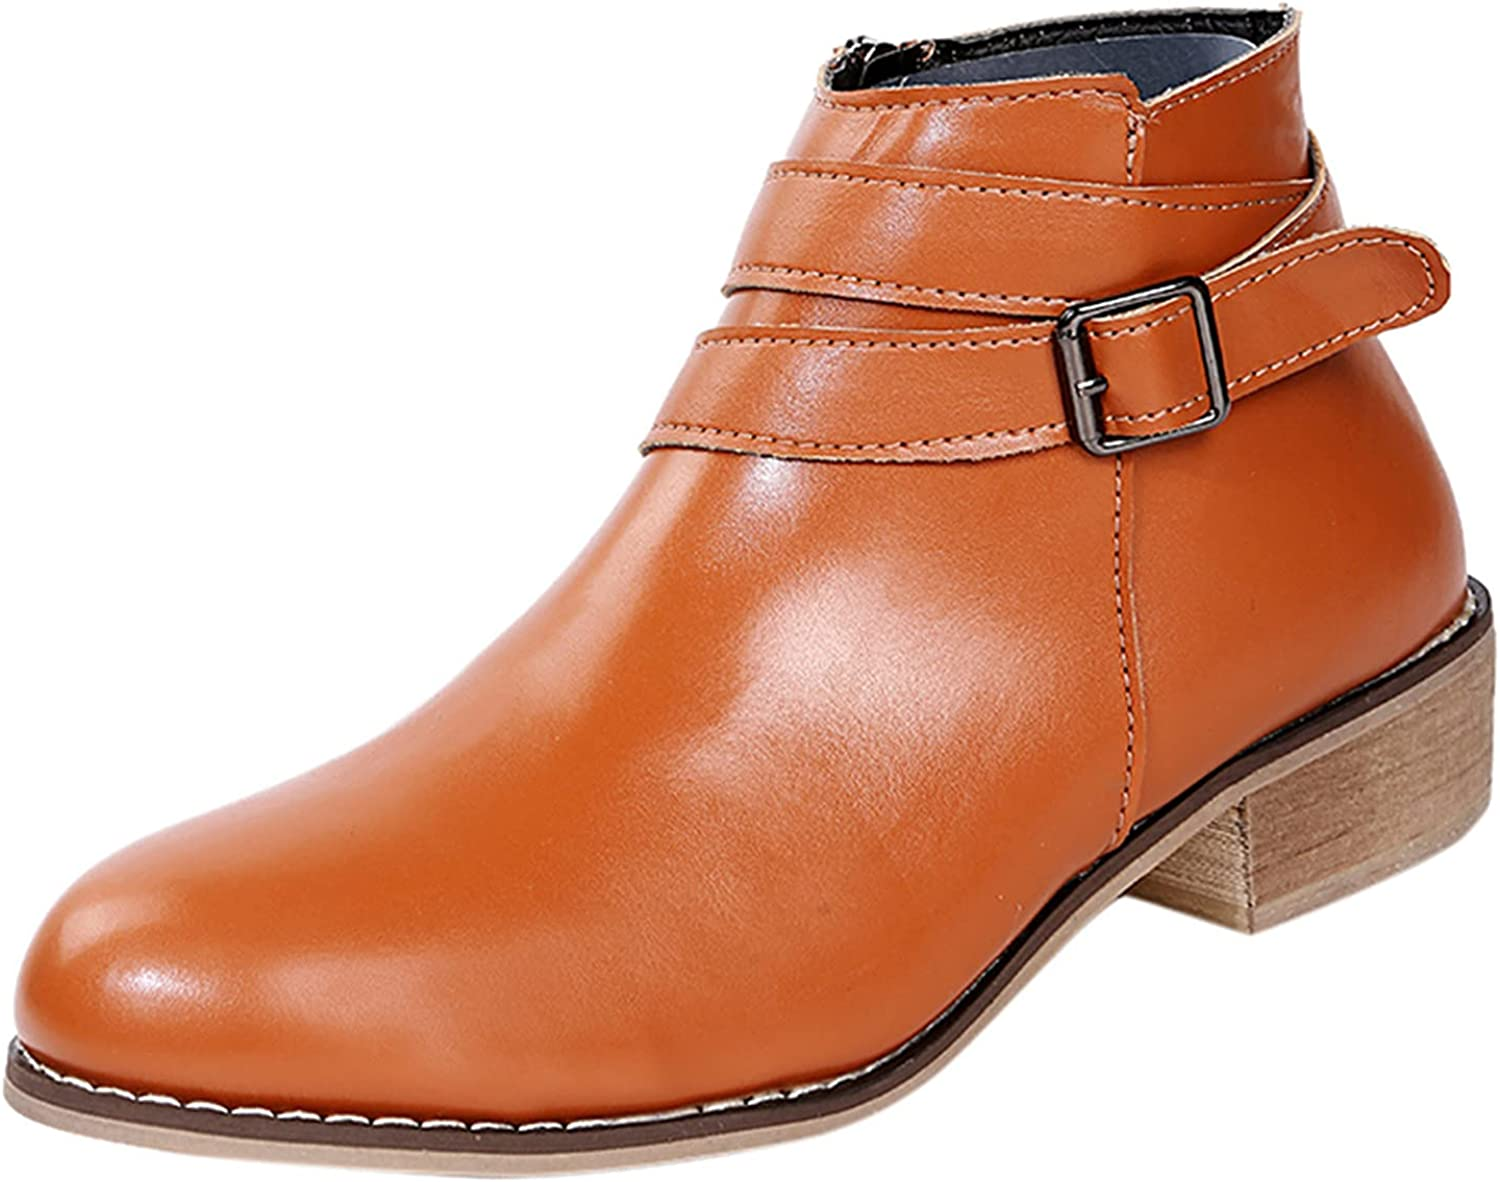 BGFIIPAJG Fall Boots for Women,Womens Non-Slip Solid Color Squar